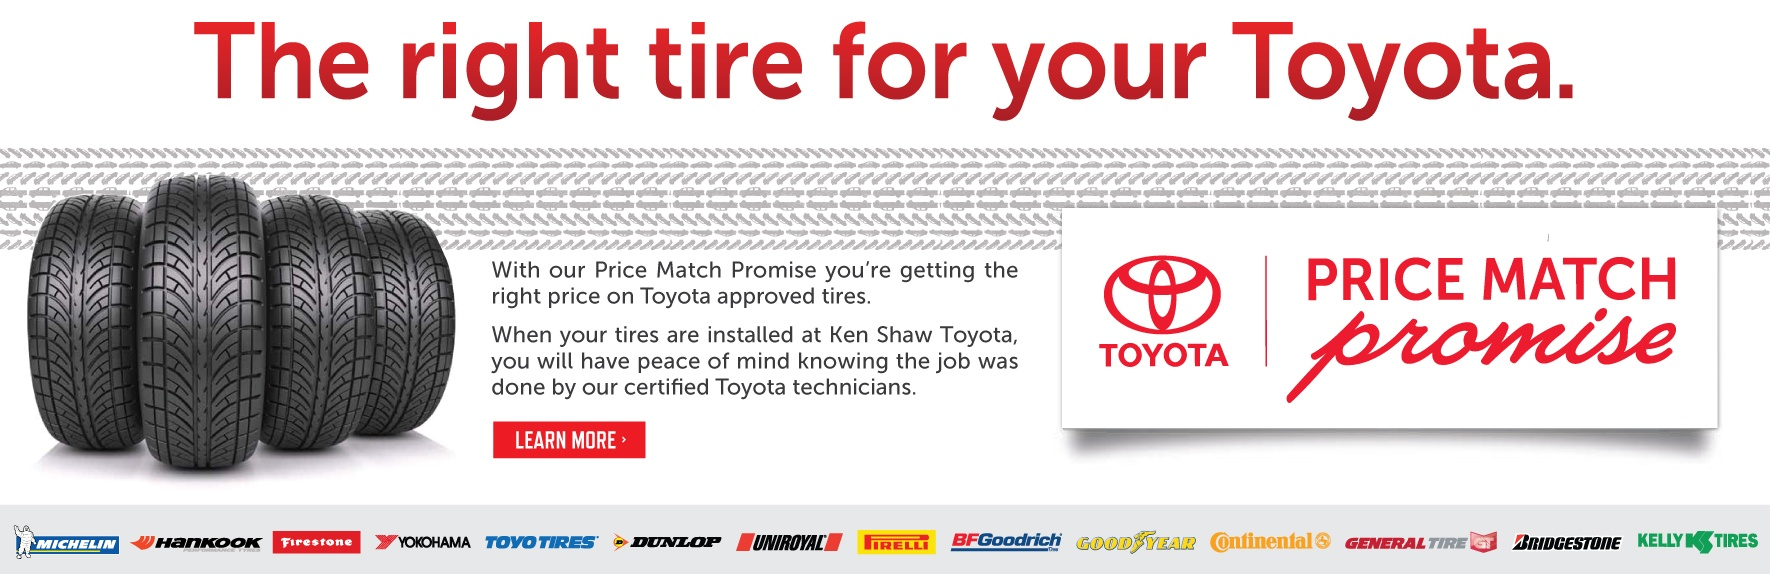 Toyota winter tire price match promotion toronto ontario toyota dealership